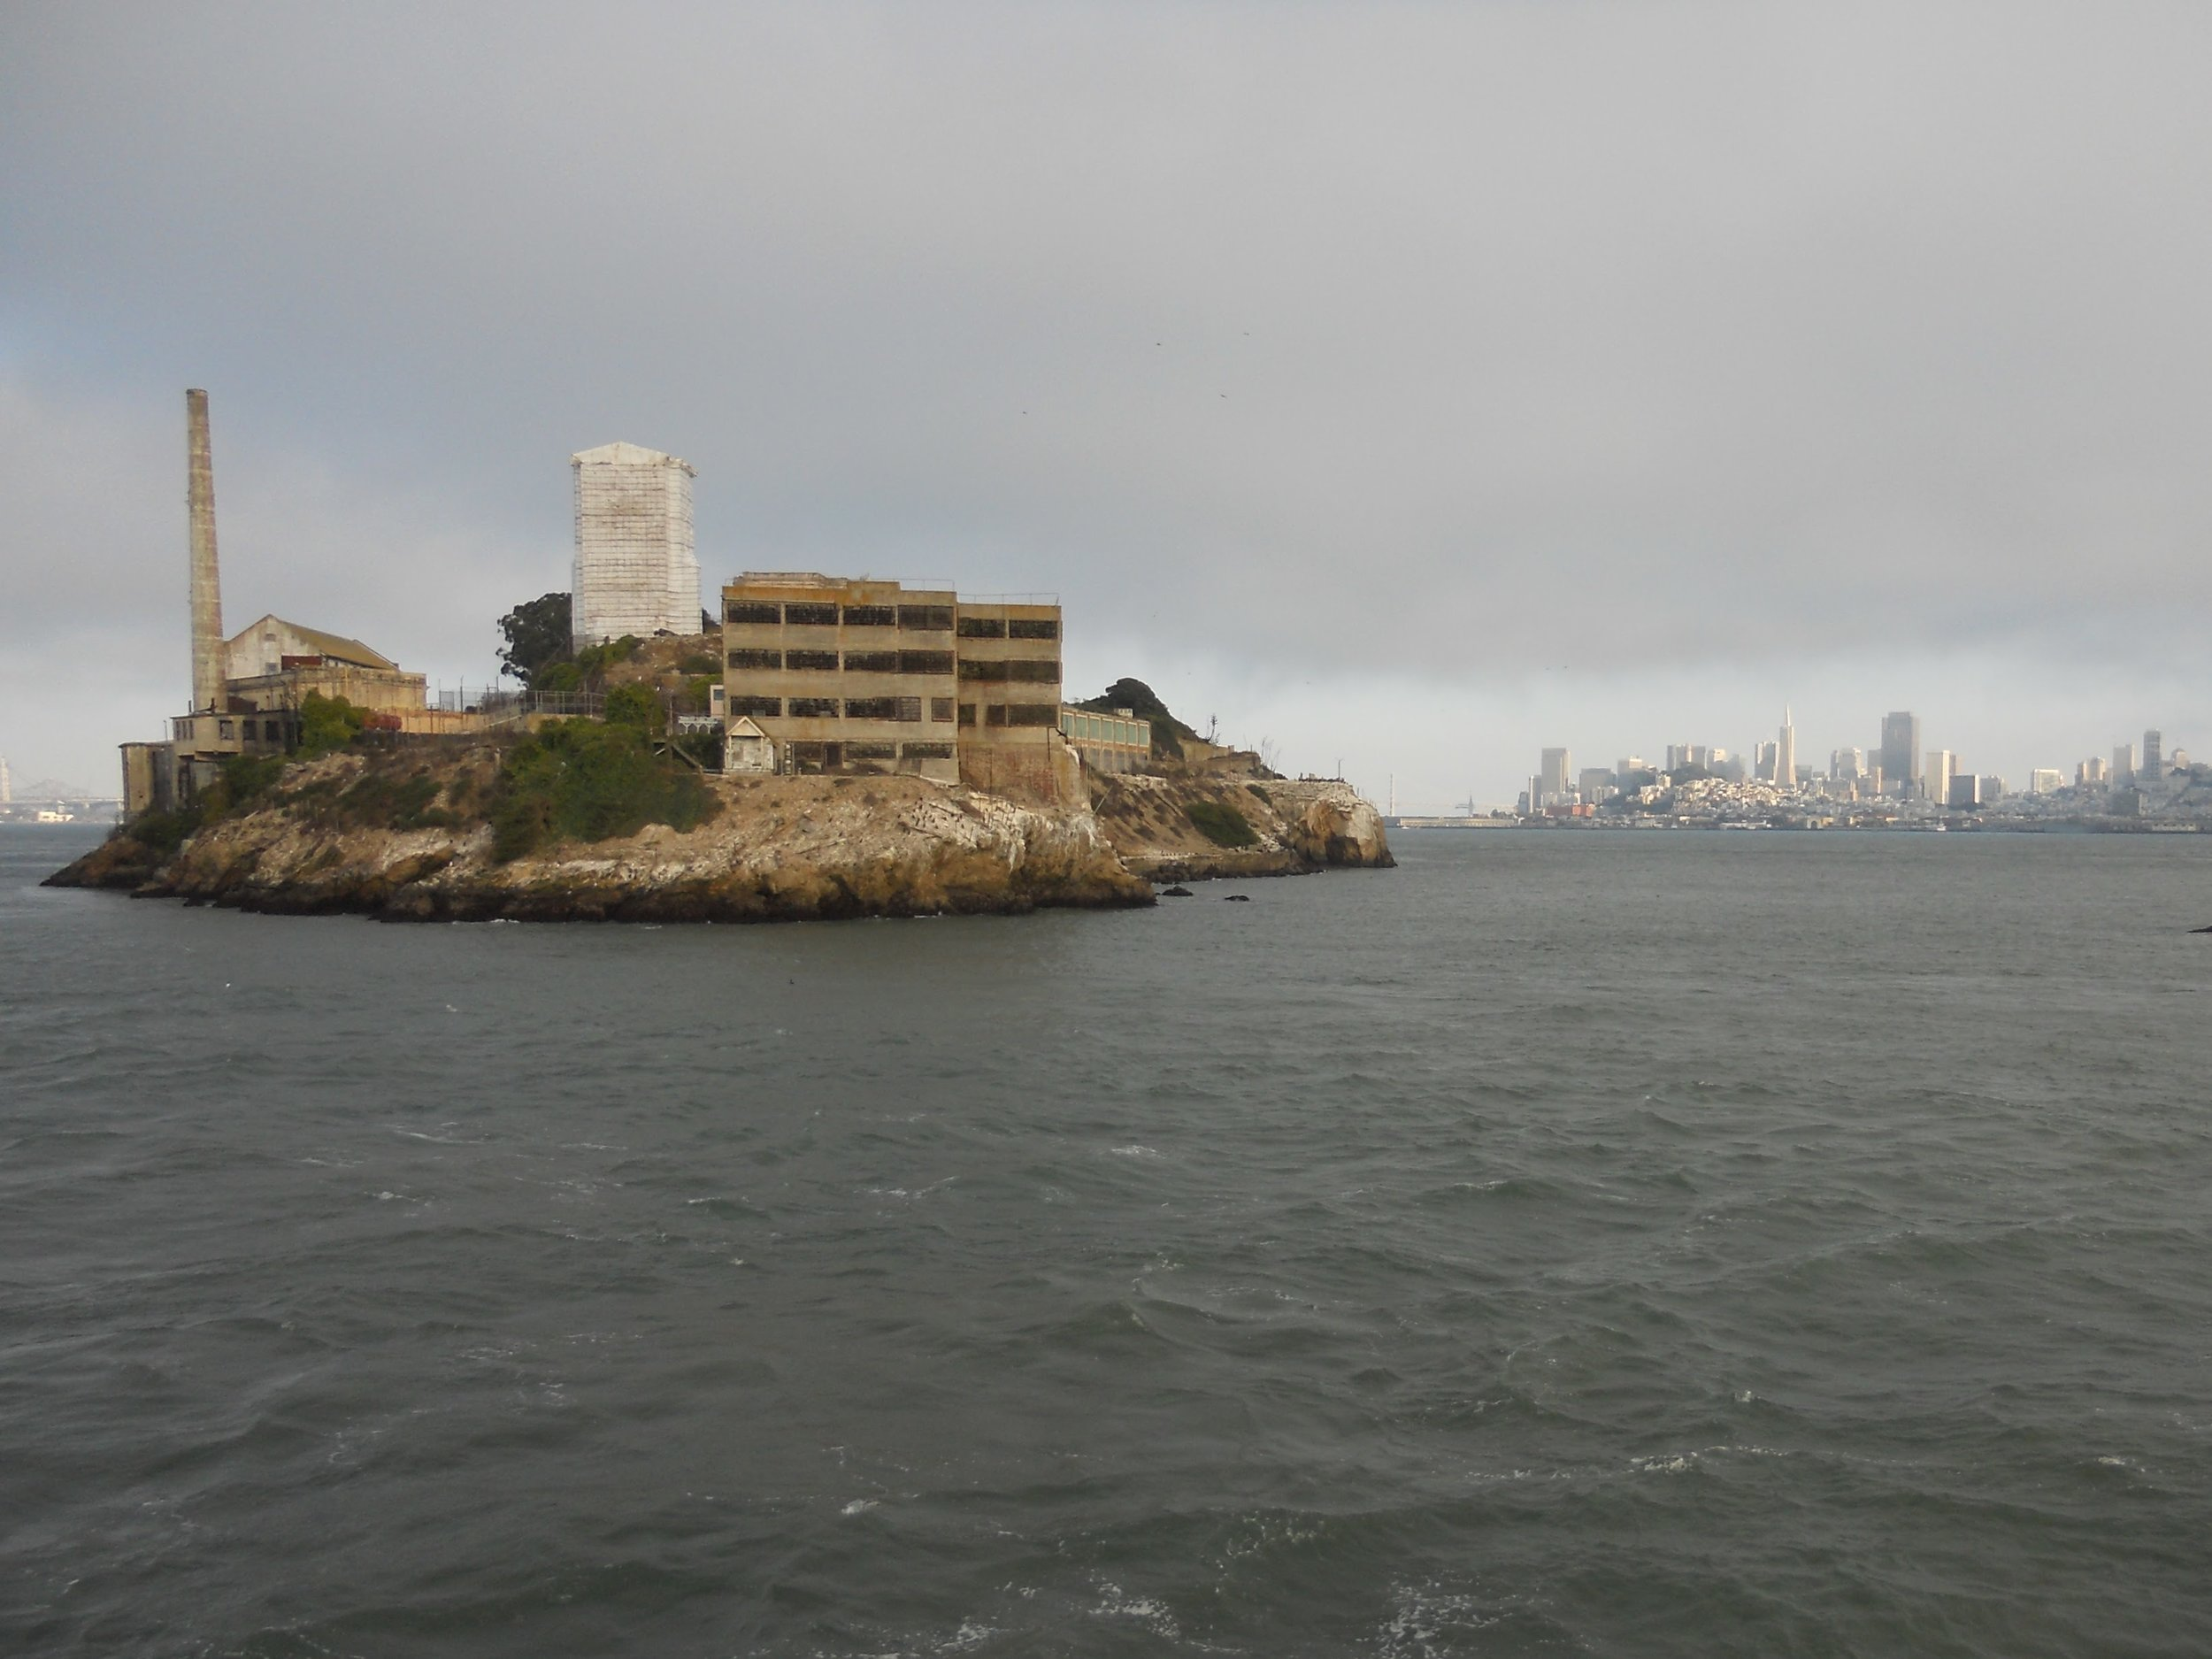 Downtown San Francisco in the distance behind Alcatraz Island